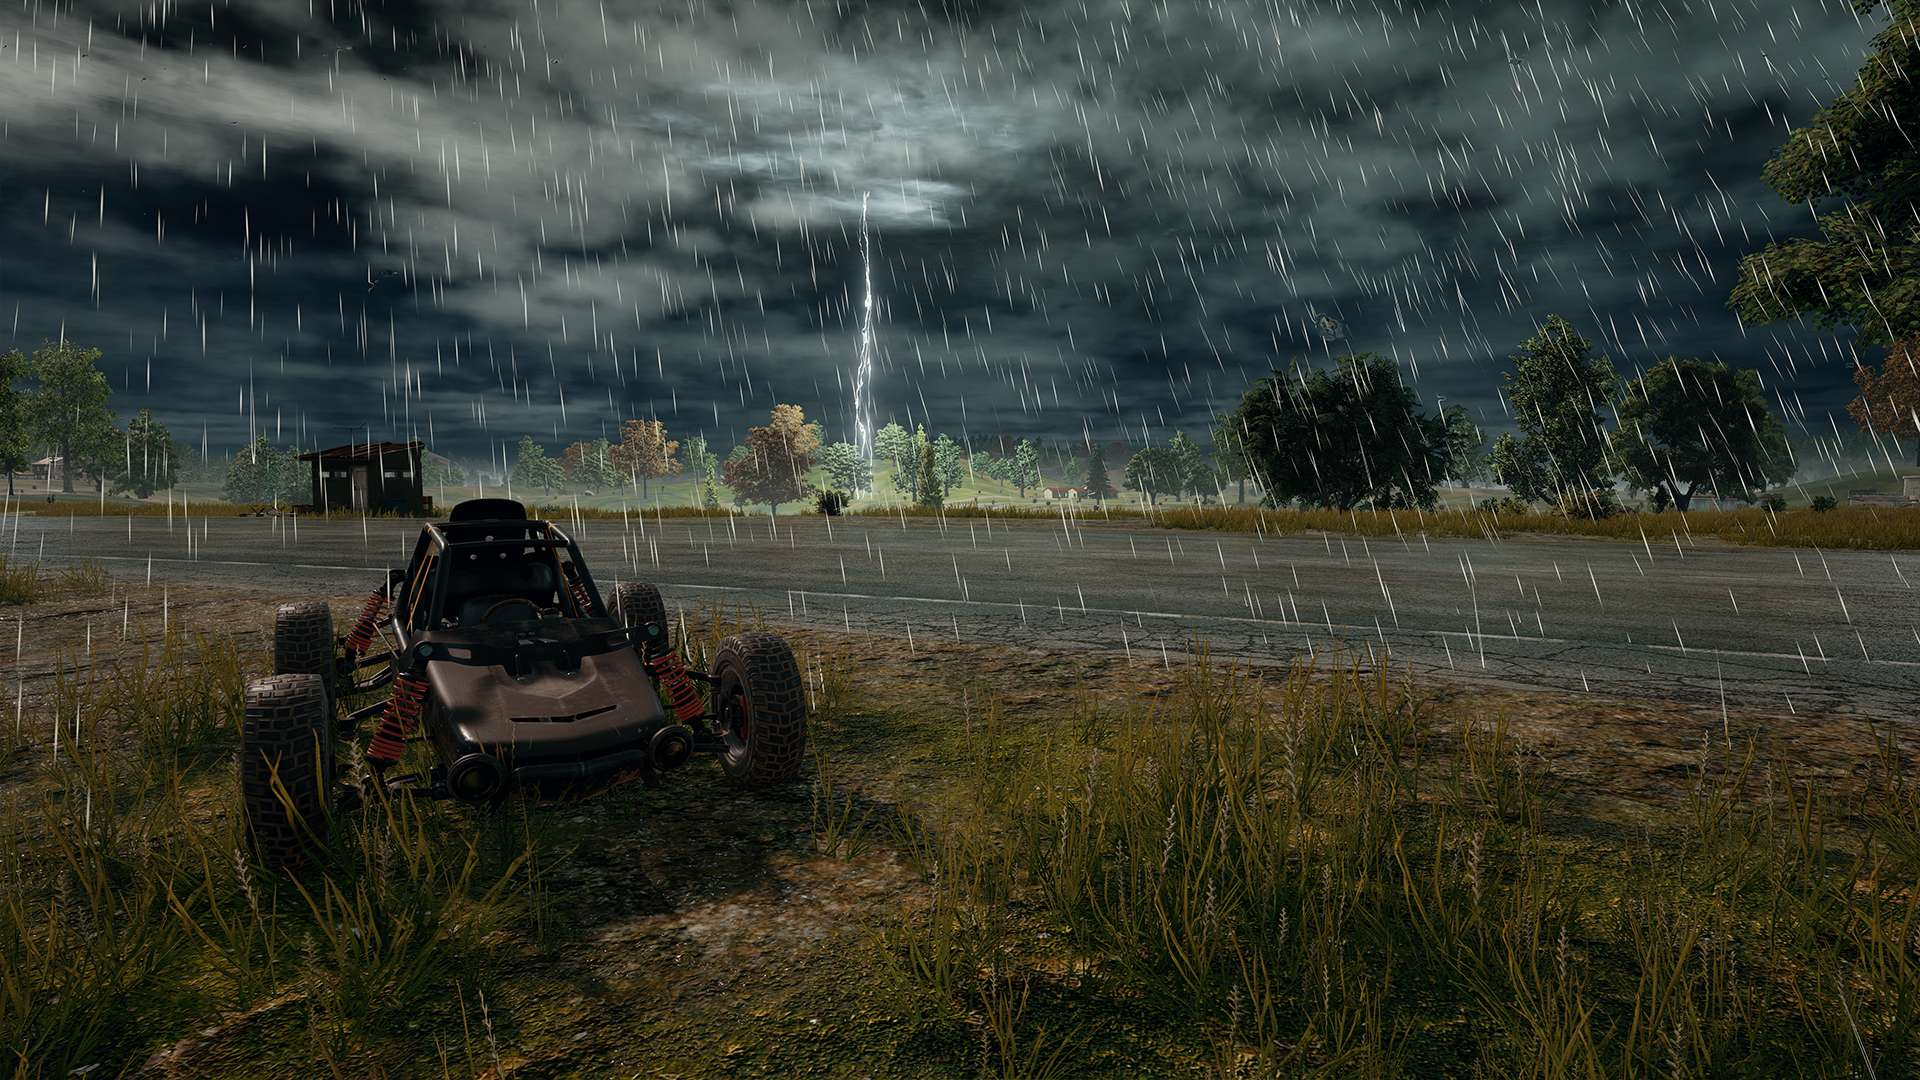 Pubg Hd Pics For Mobile: PUBG Wallpaper 07